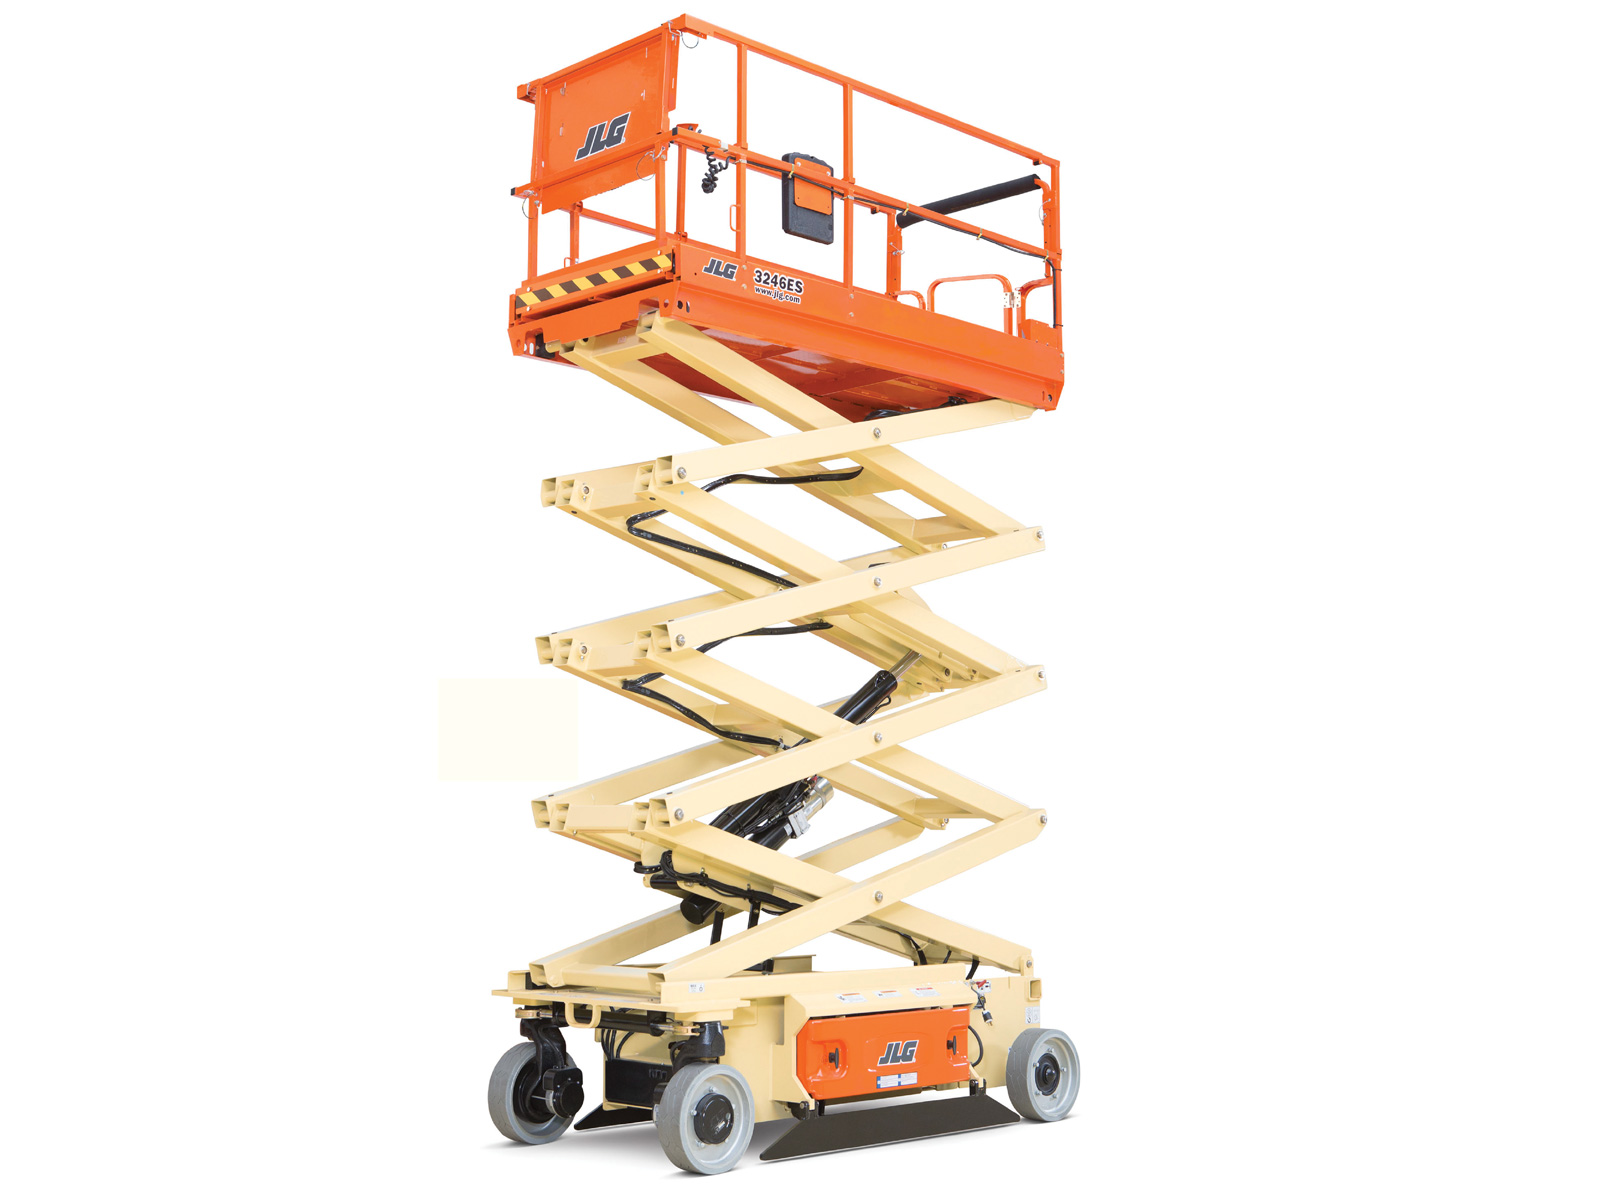 1930es electric scissor lift jlg 3246es